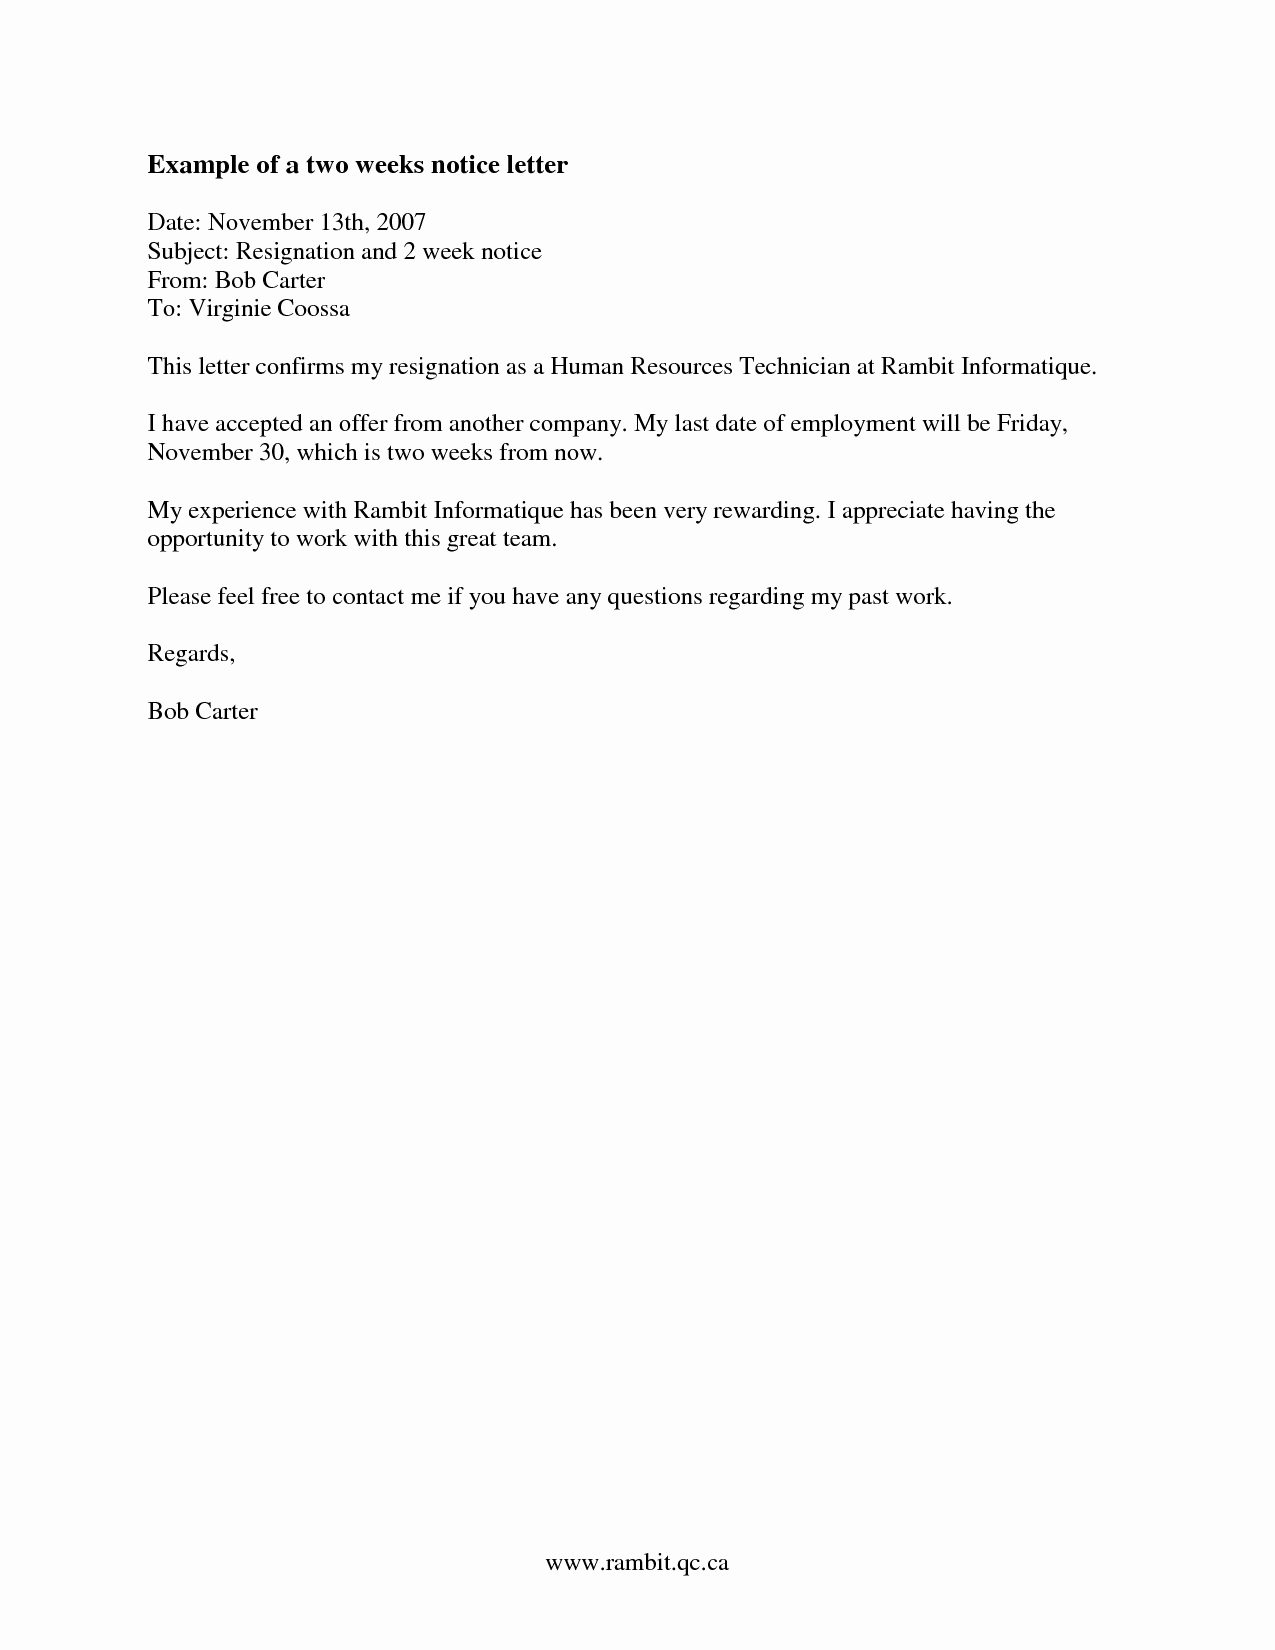 2 Weeks Notice Letter format Beautiful Two Weeks Notice Letter Template